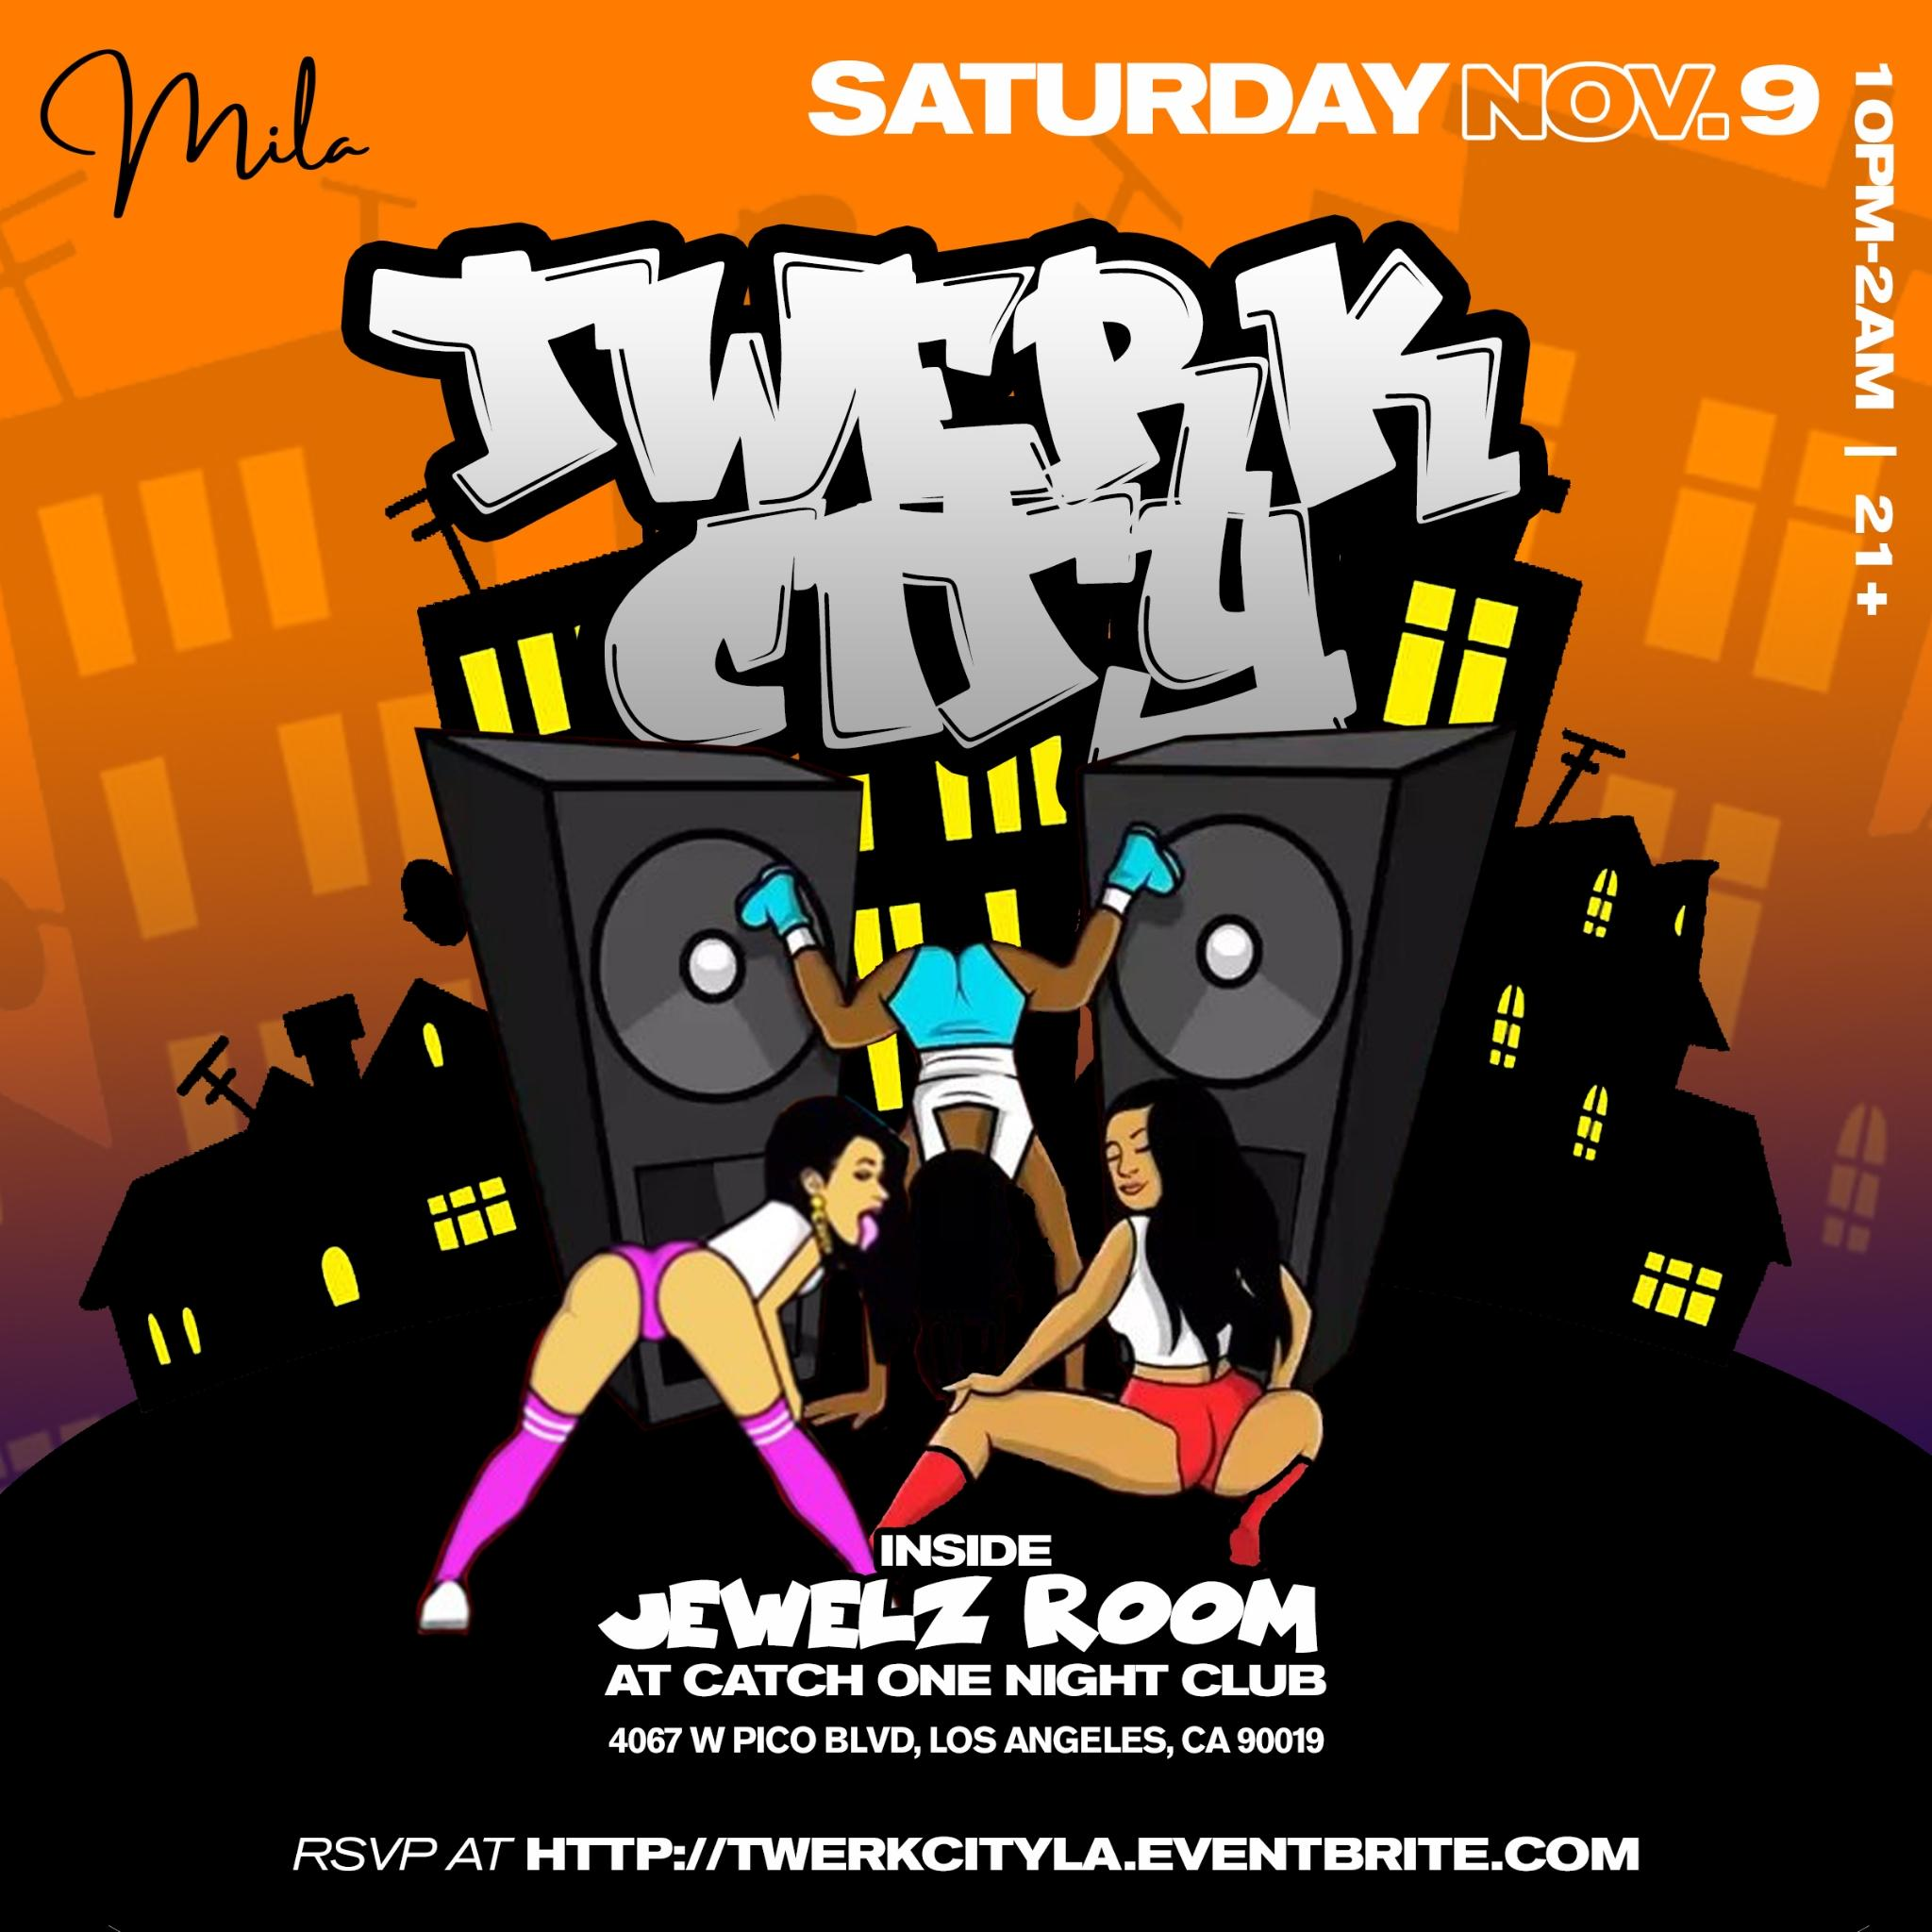 Twerk City (A Twerk Party) - Free Before 10:30pm